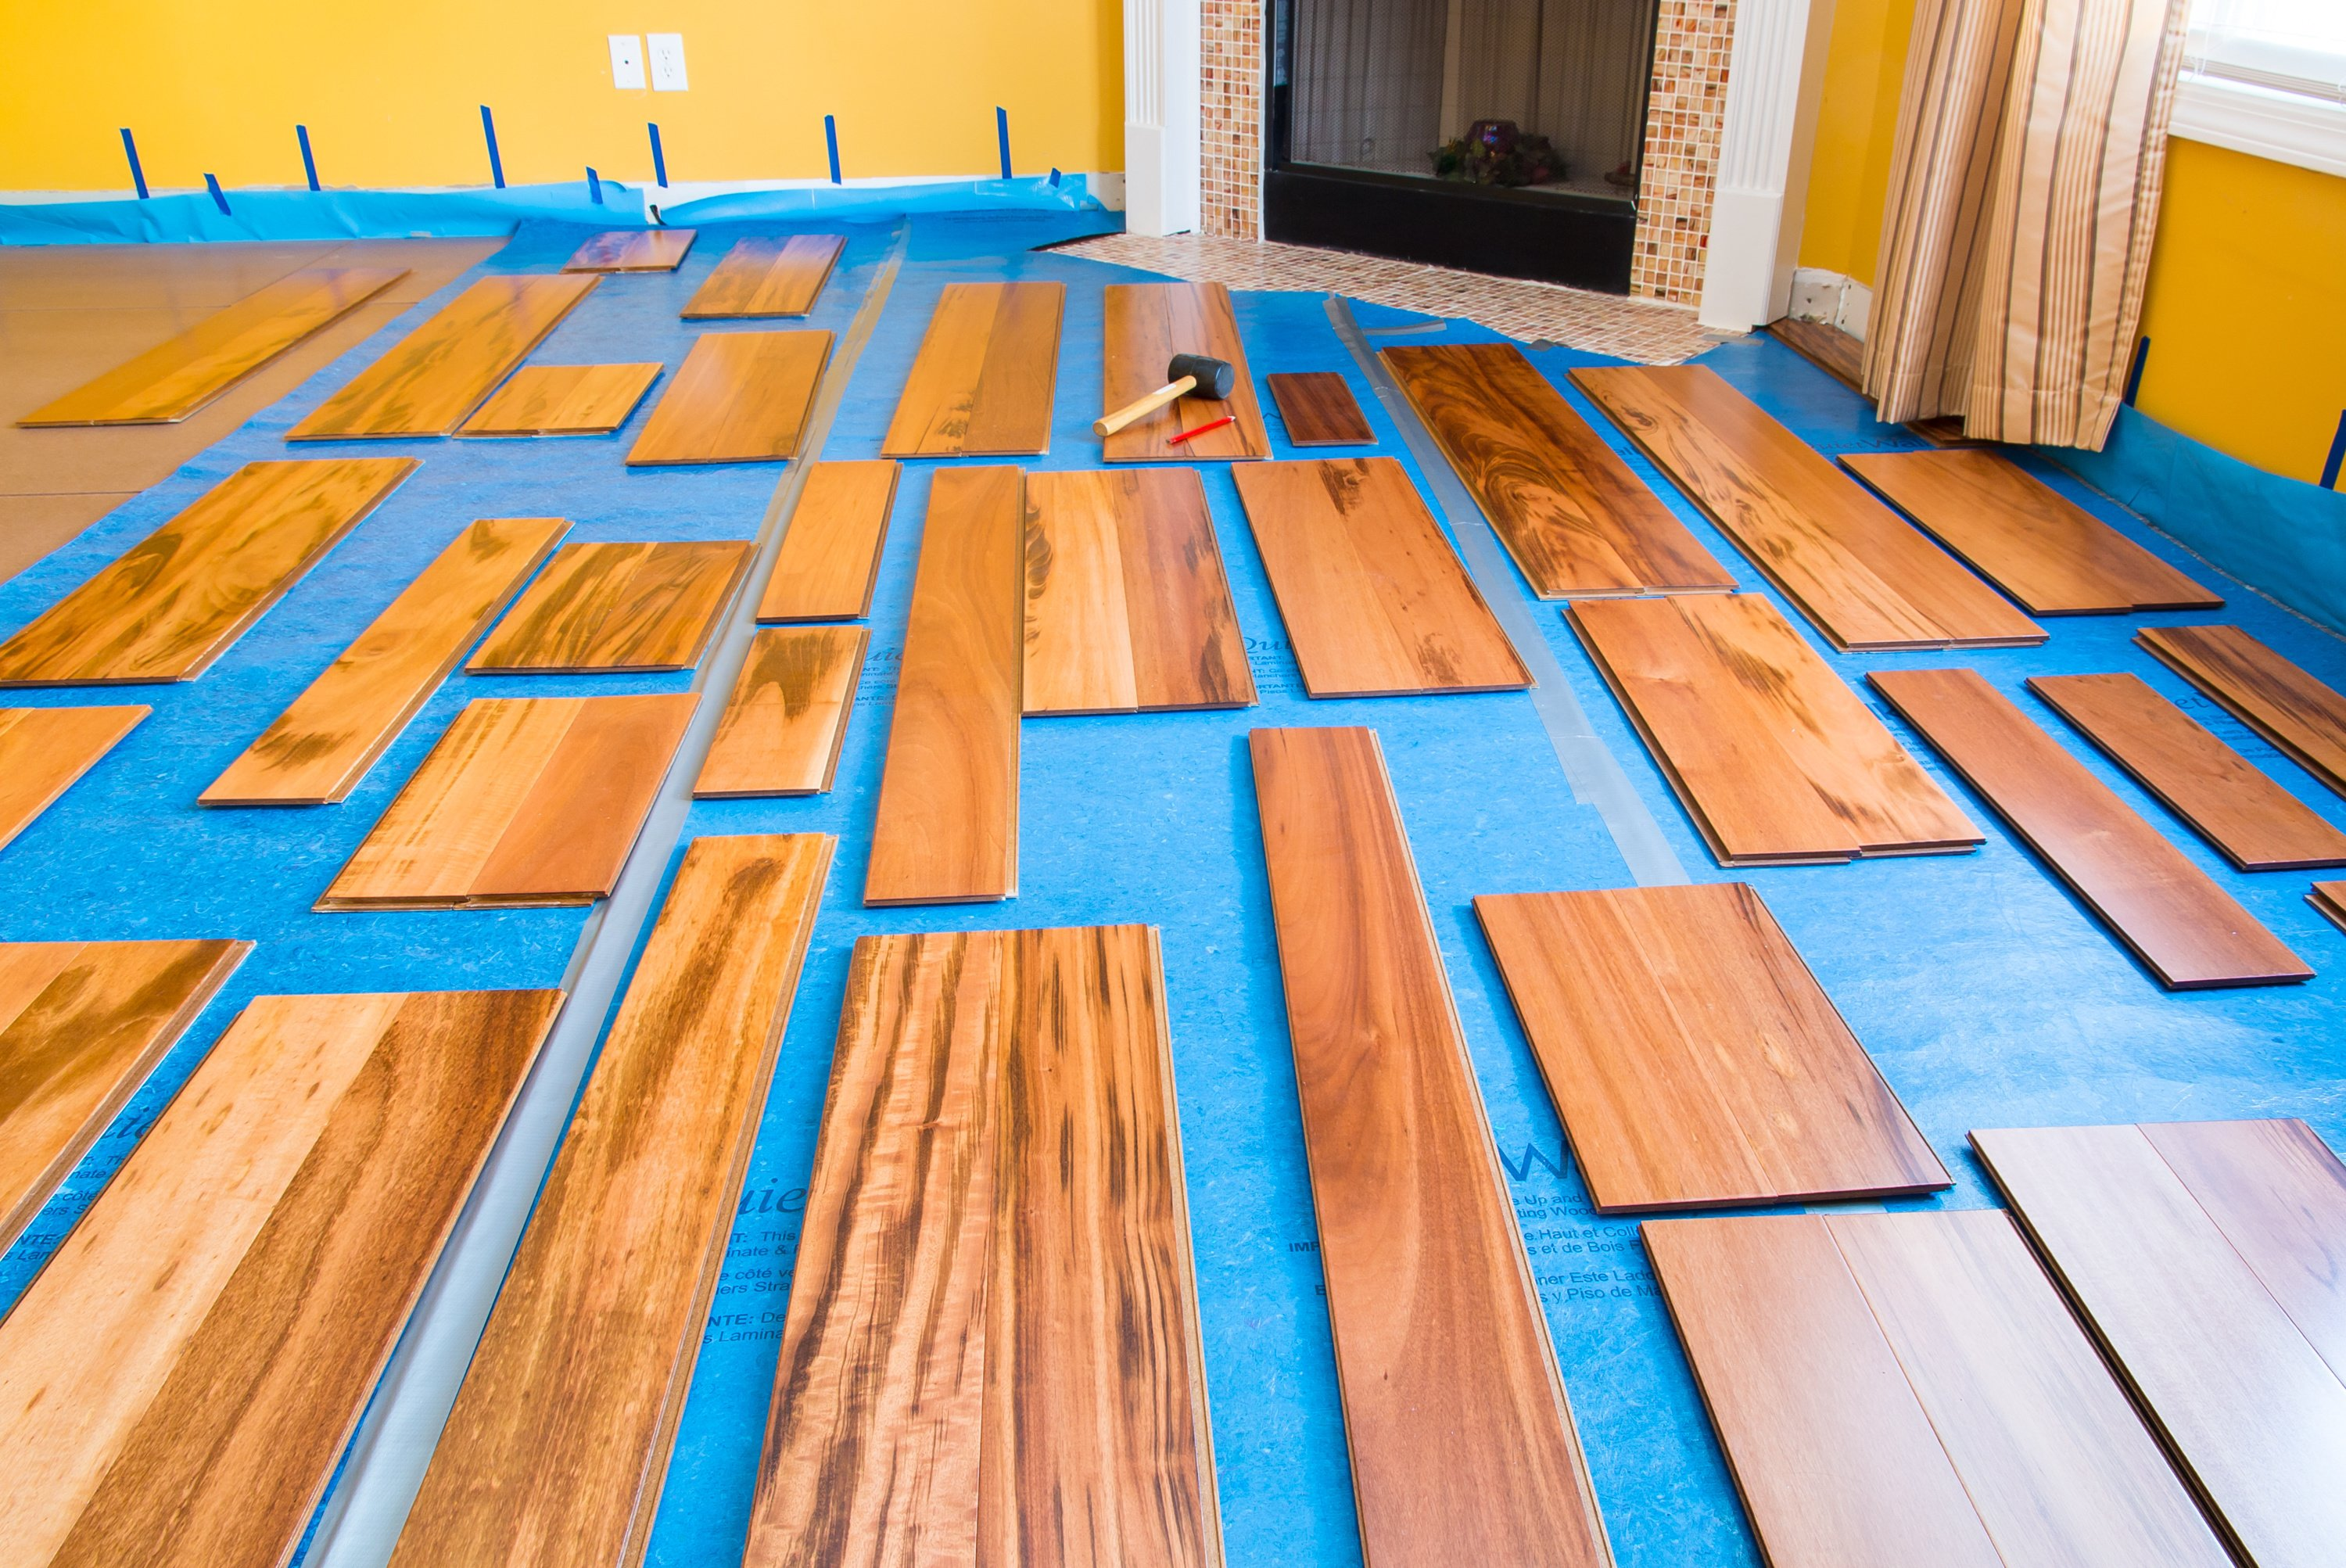 Prefinished wood planks laid out near fireplace